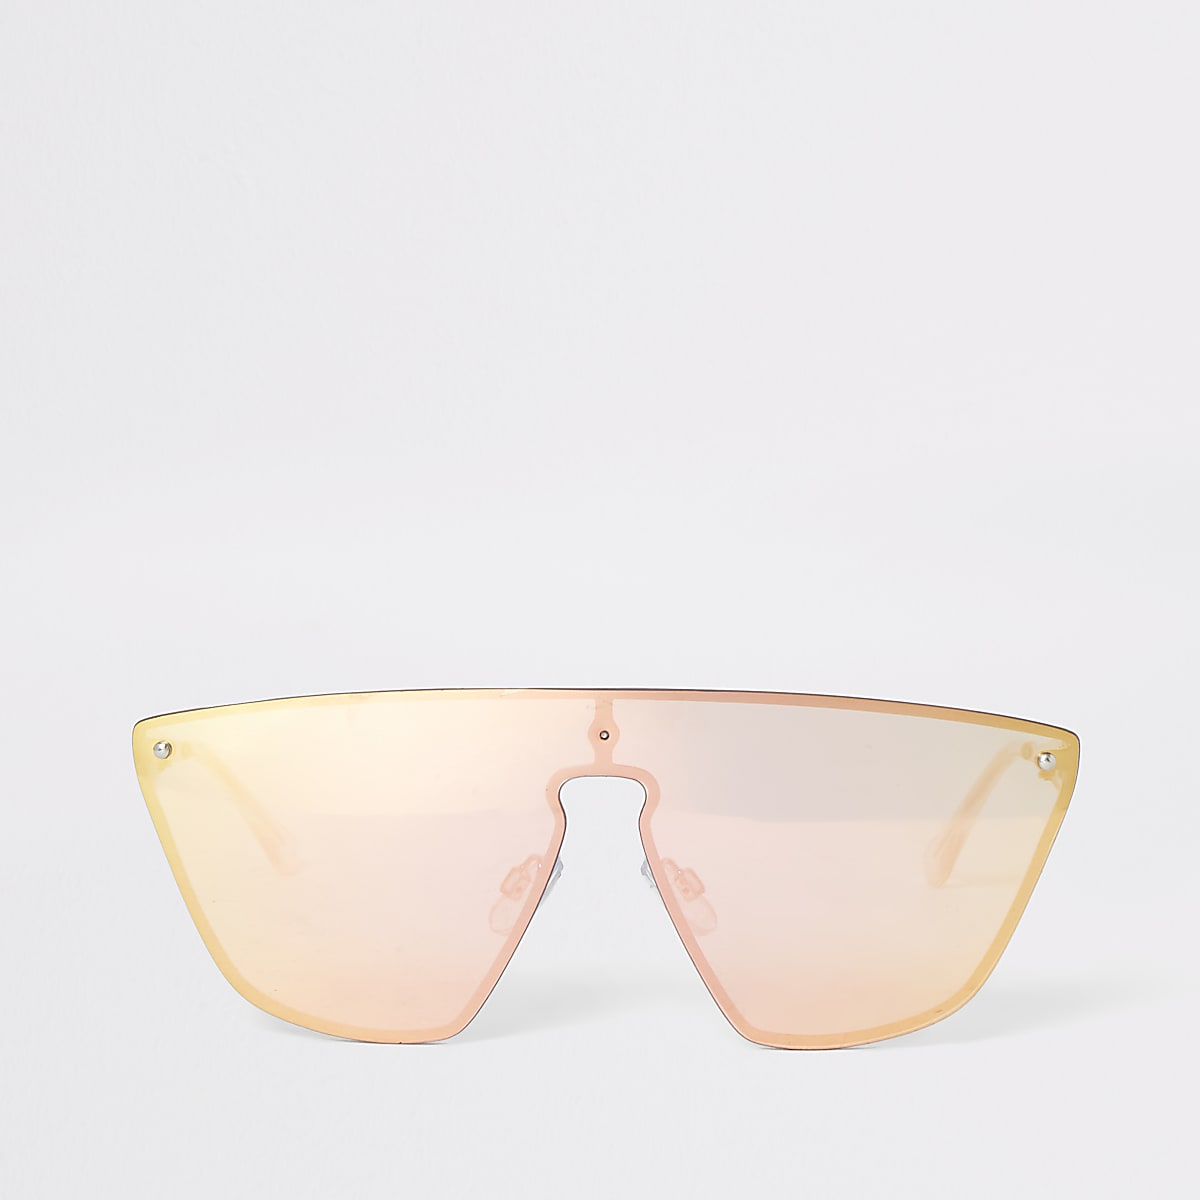 Gold tone visor sunglasses